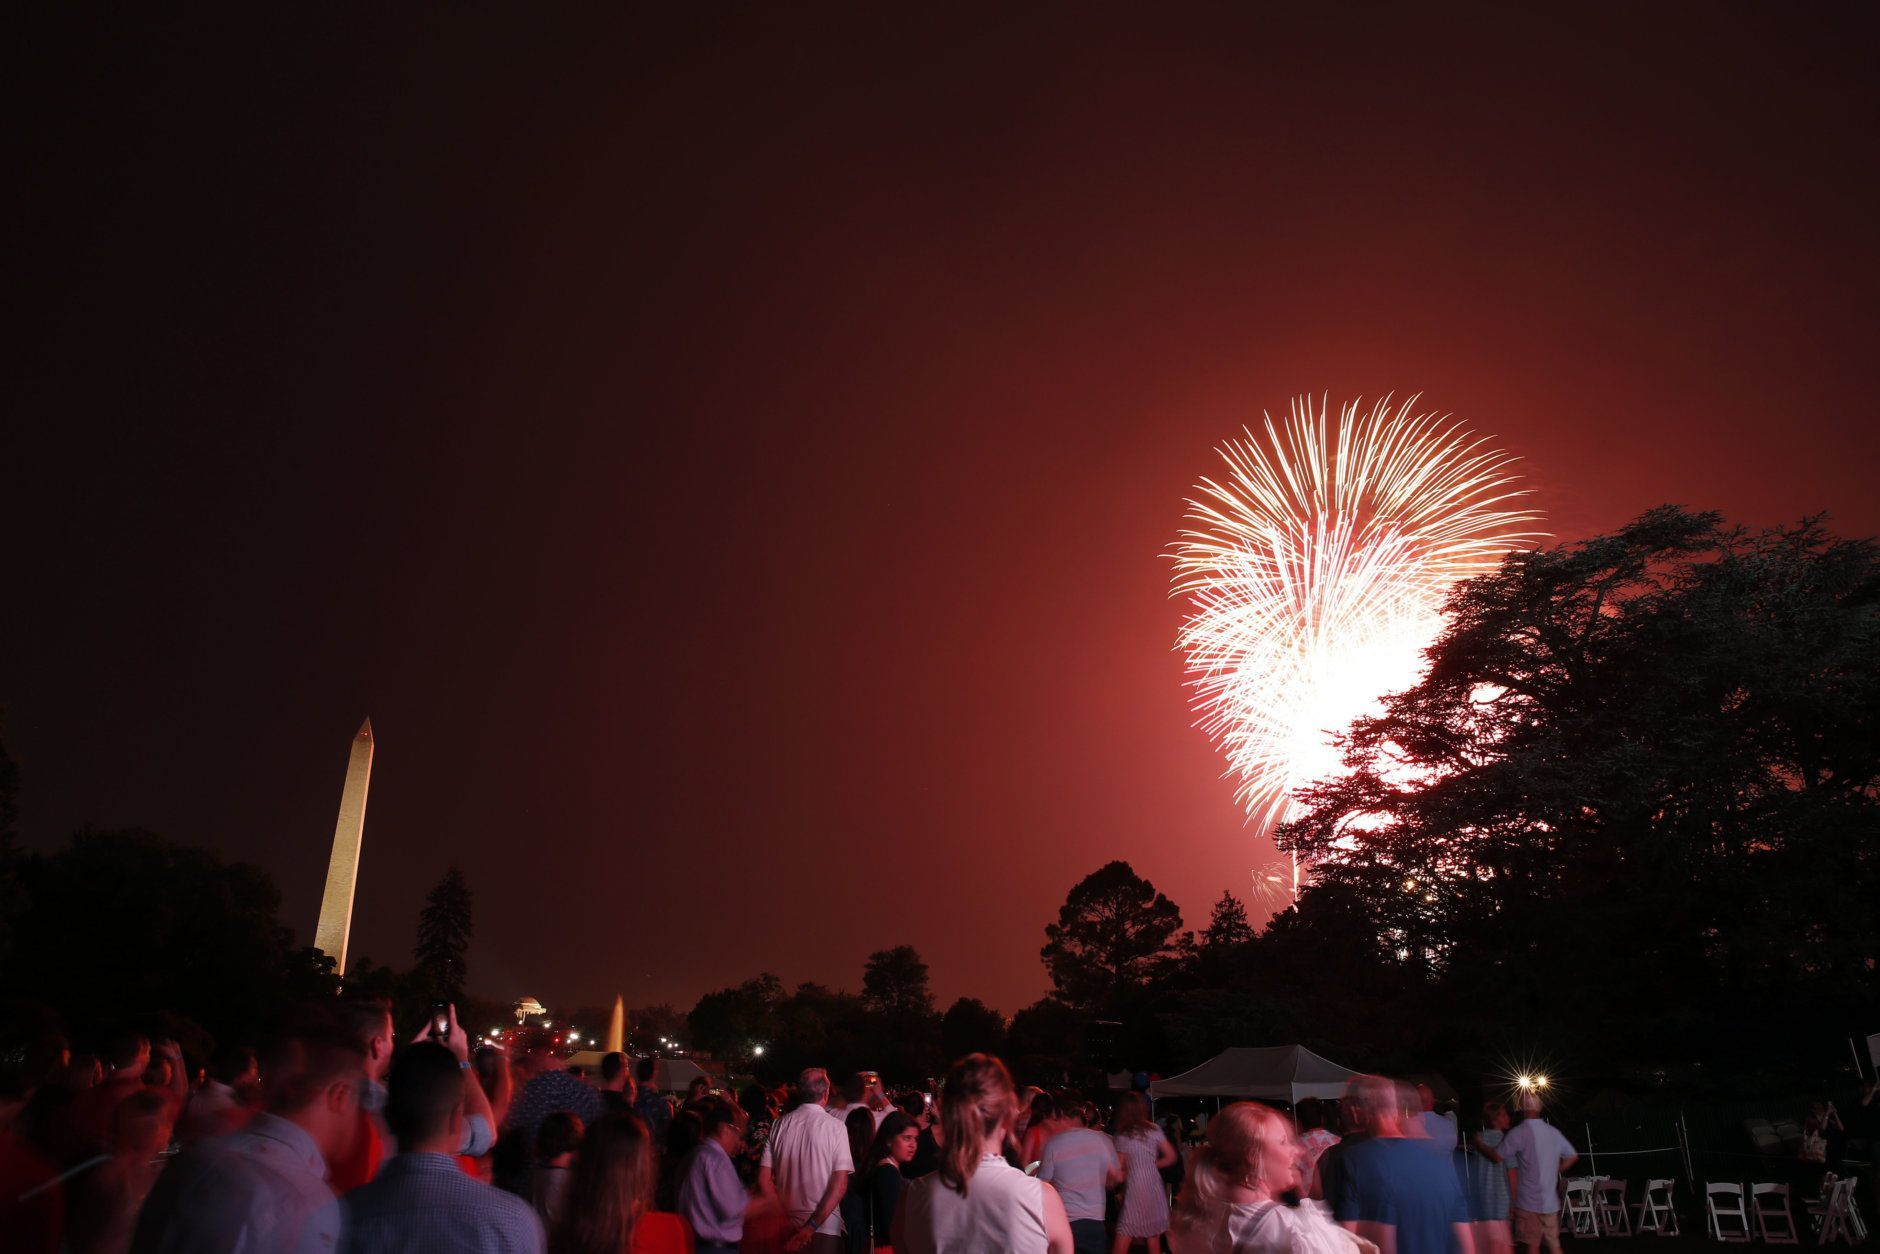 People watch fireworks on the National Mall from the South Lawn of the White House, Wednesday, July 4, 2018, in Washington. (AP Photo/Alex Brandon)